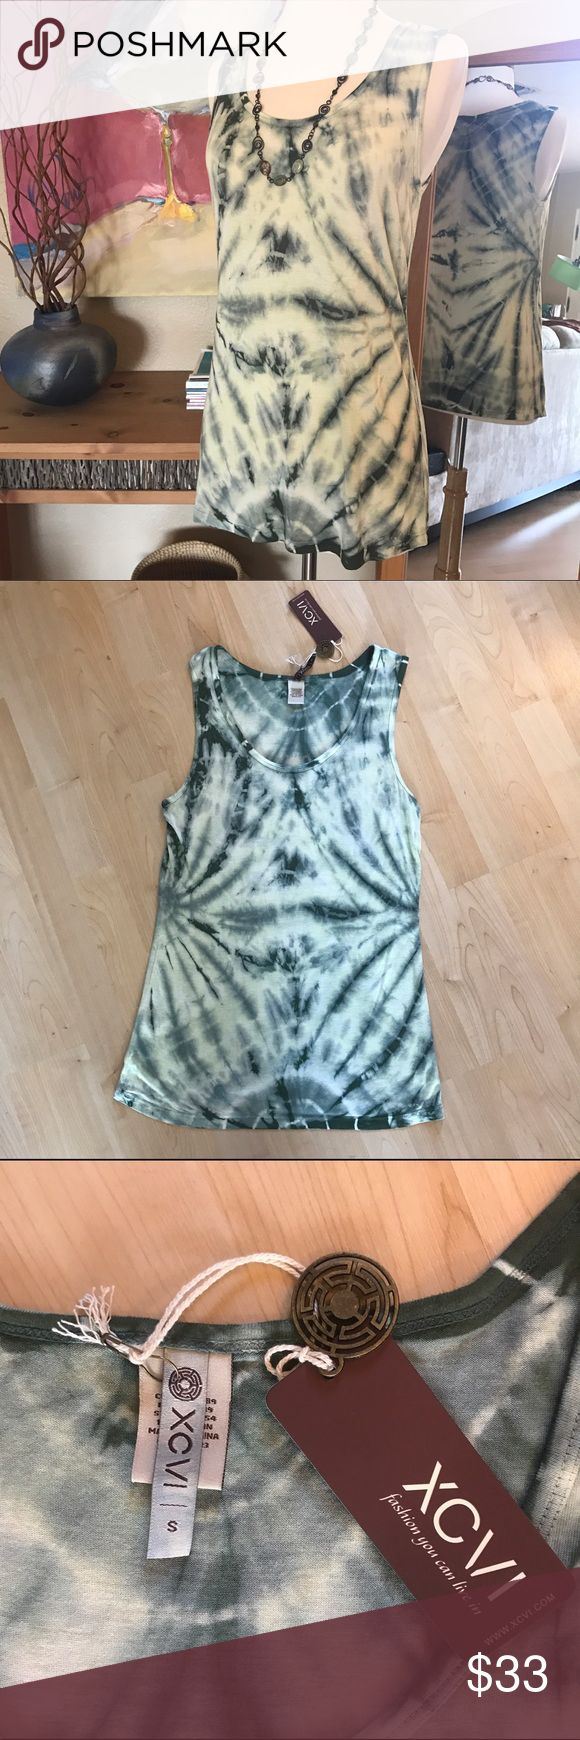 Selling this XCVI tunic tank on Poshmark! My username is: palm78. #shopmycloset #poshmark #fashion #shopping #style #forsale #XCVI #Tops